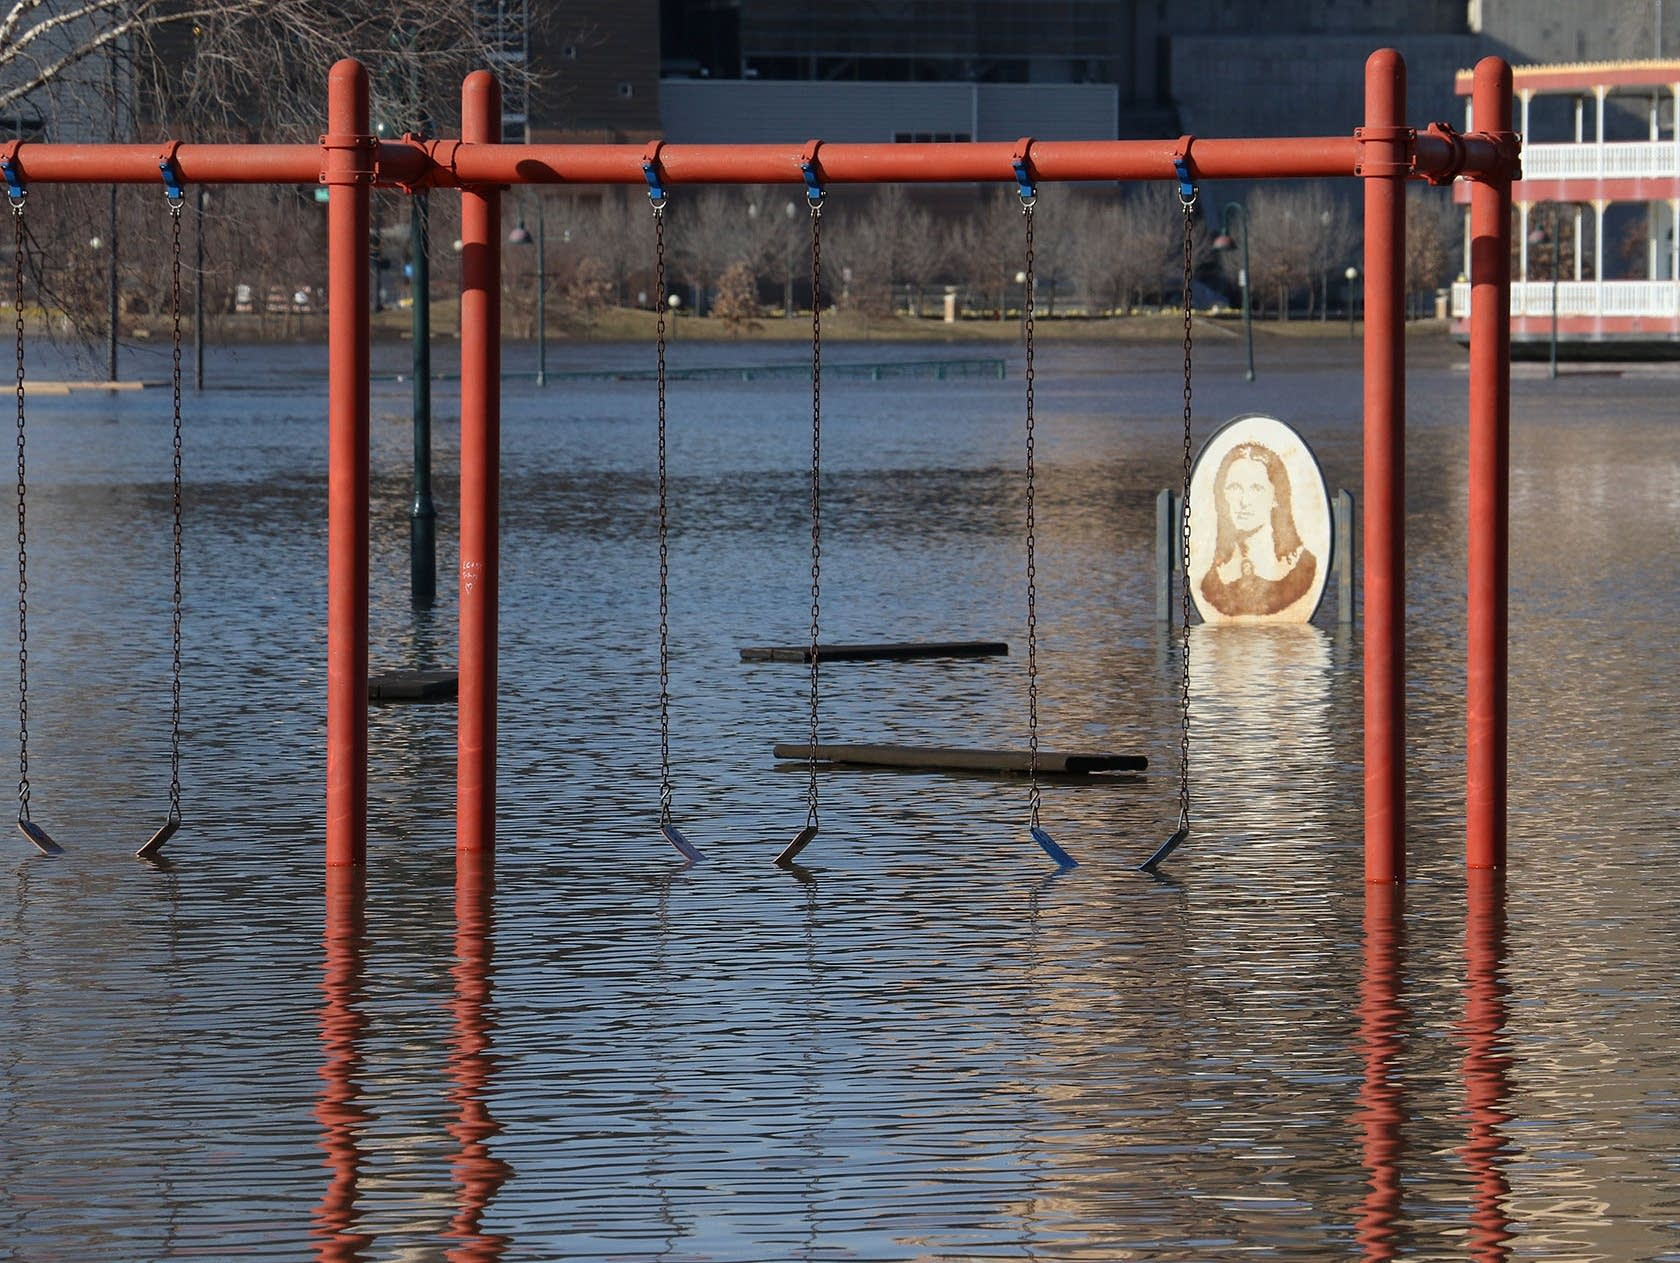 Mississippi River floodwaters reach the bottom of the swings